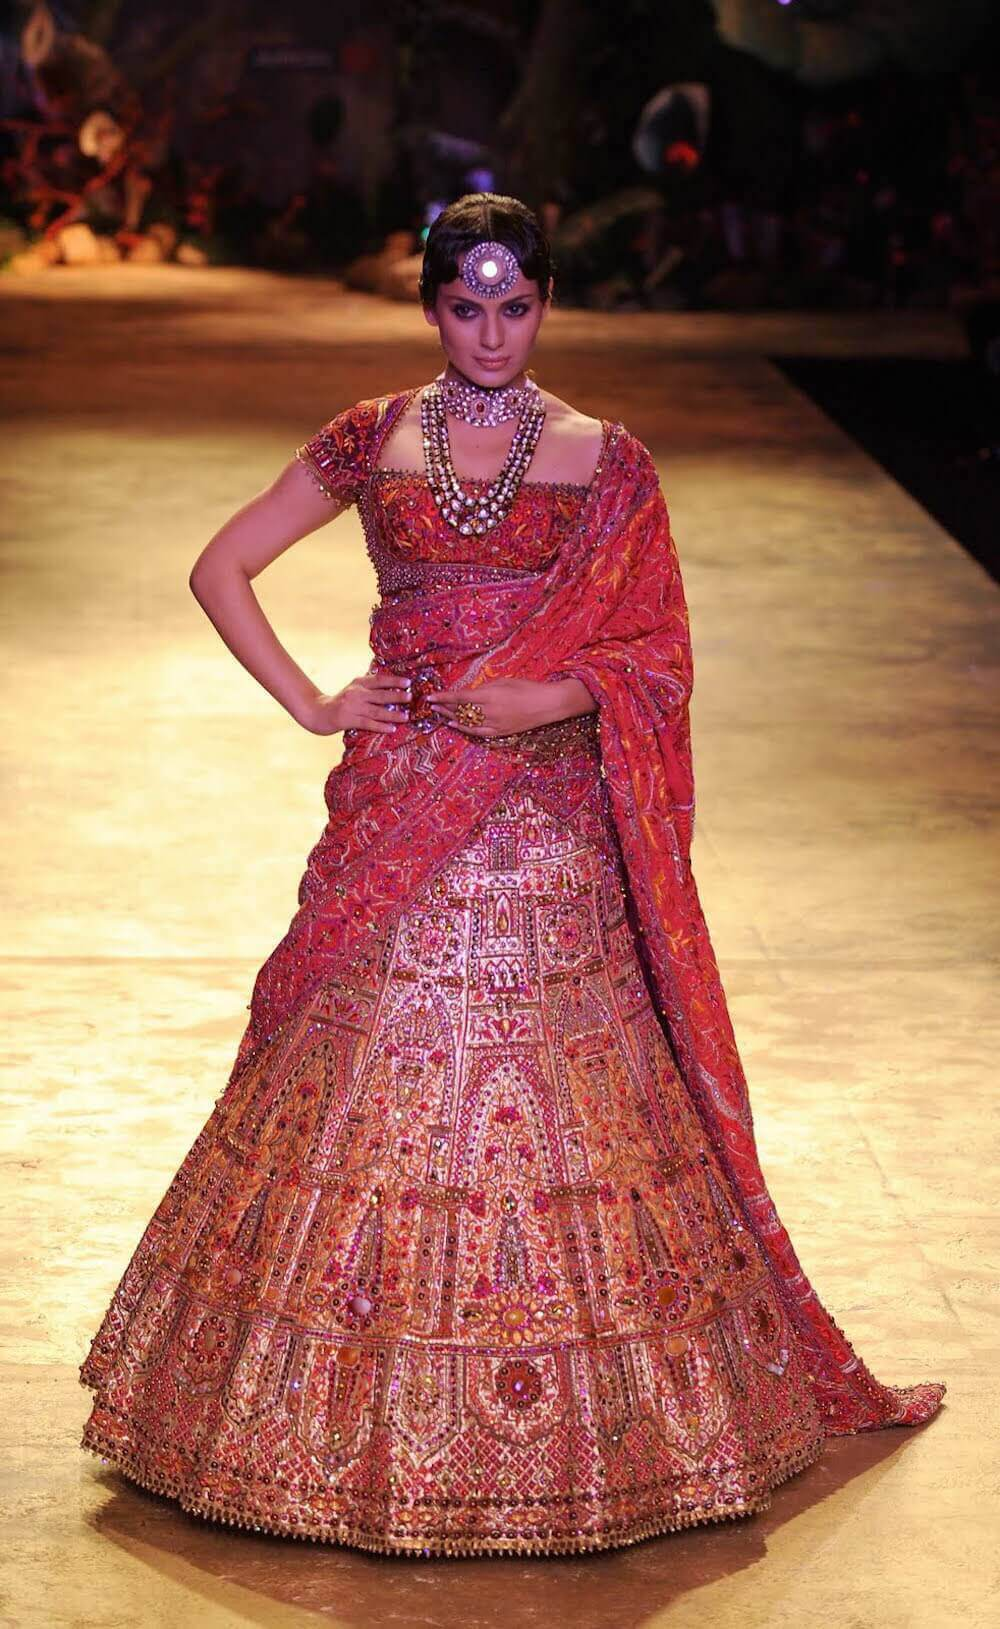 Smashing 2016 Trousseau Trends for the Millennial Indian Bride